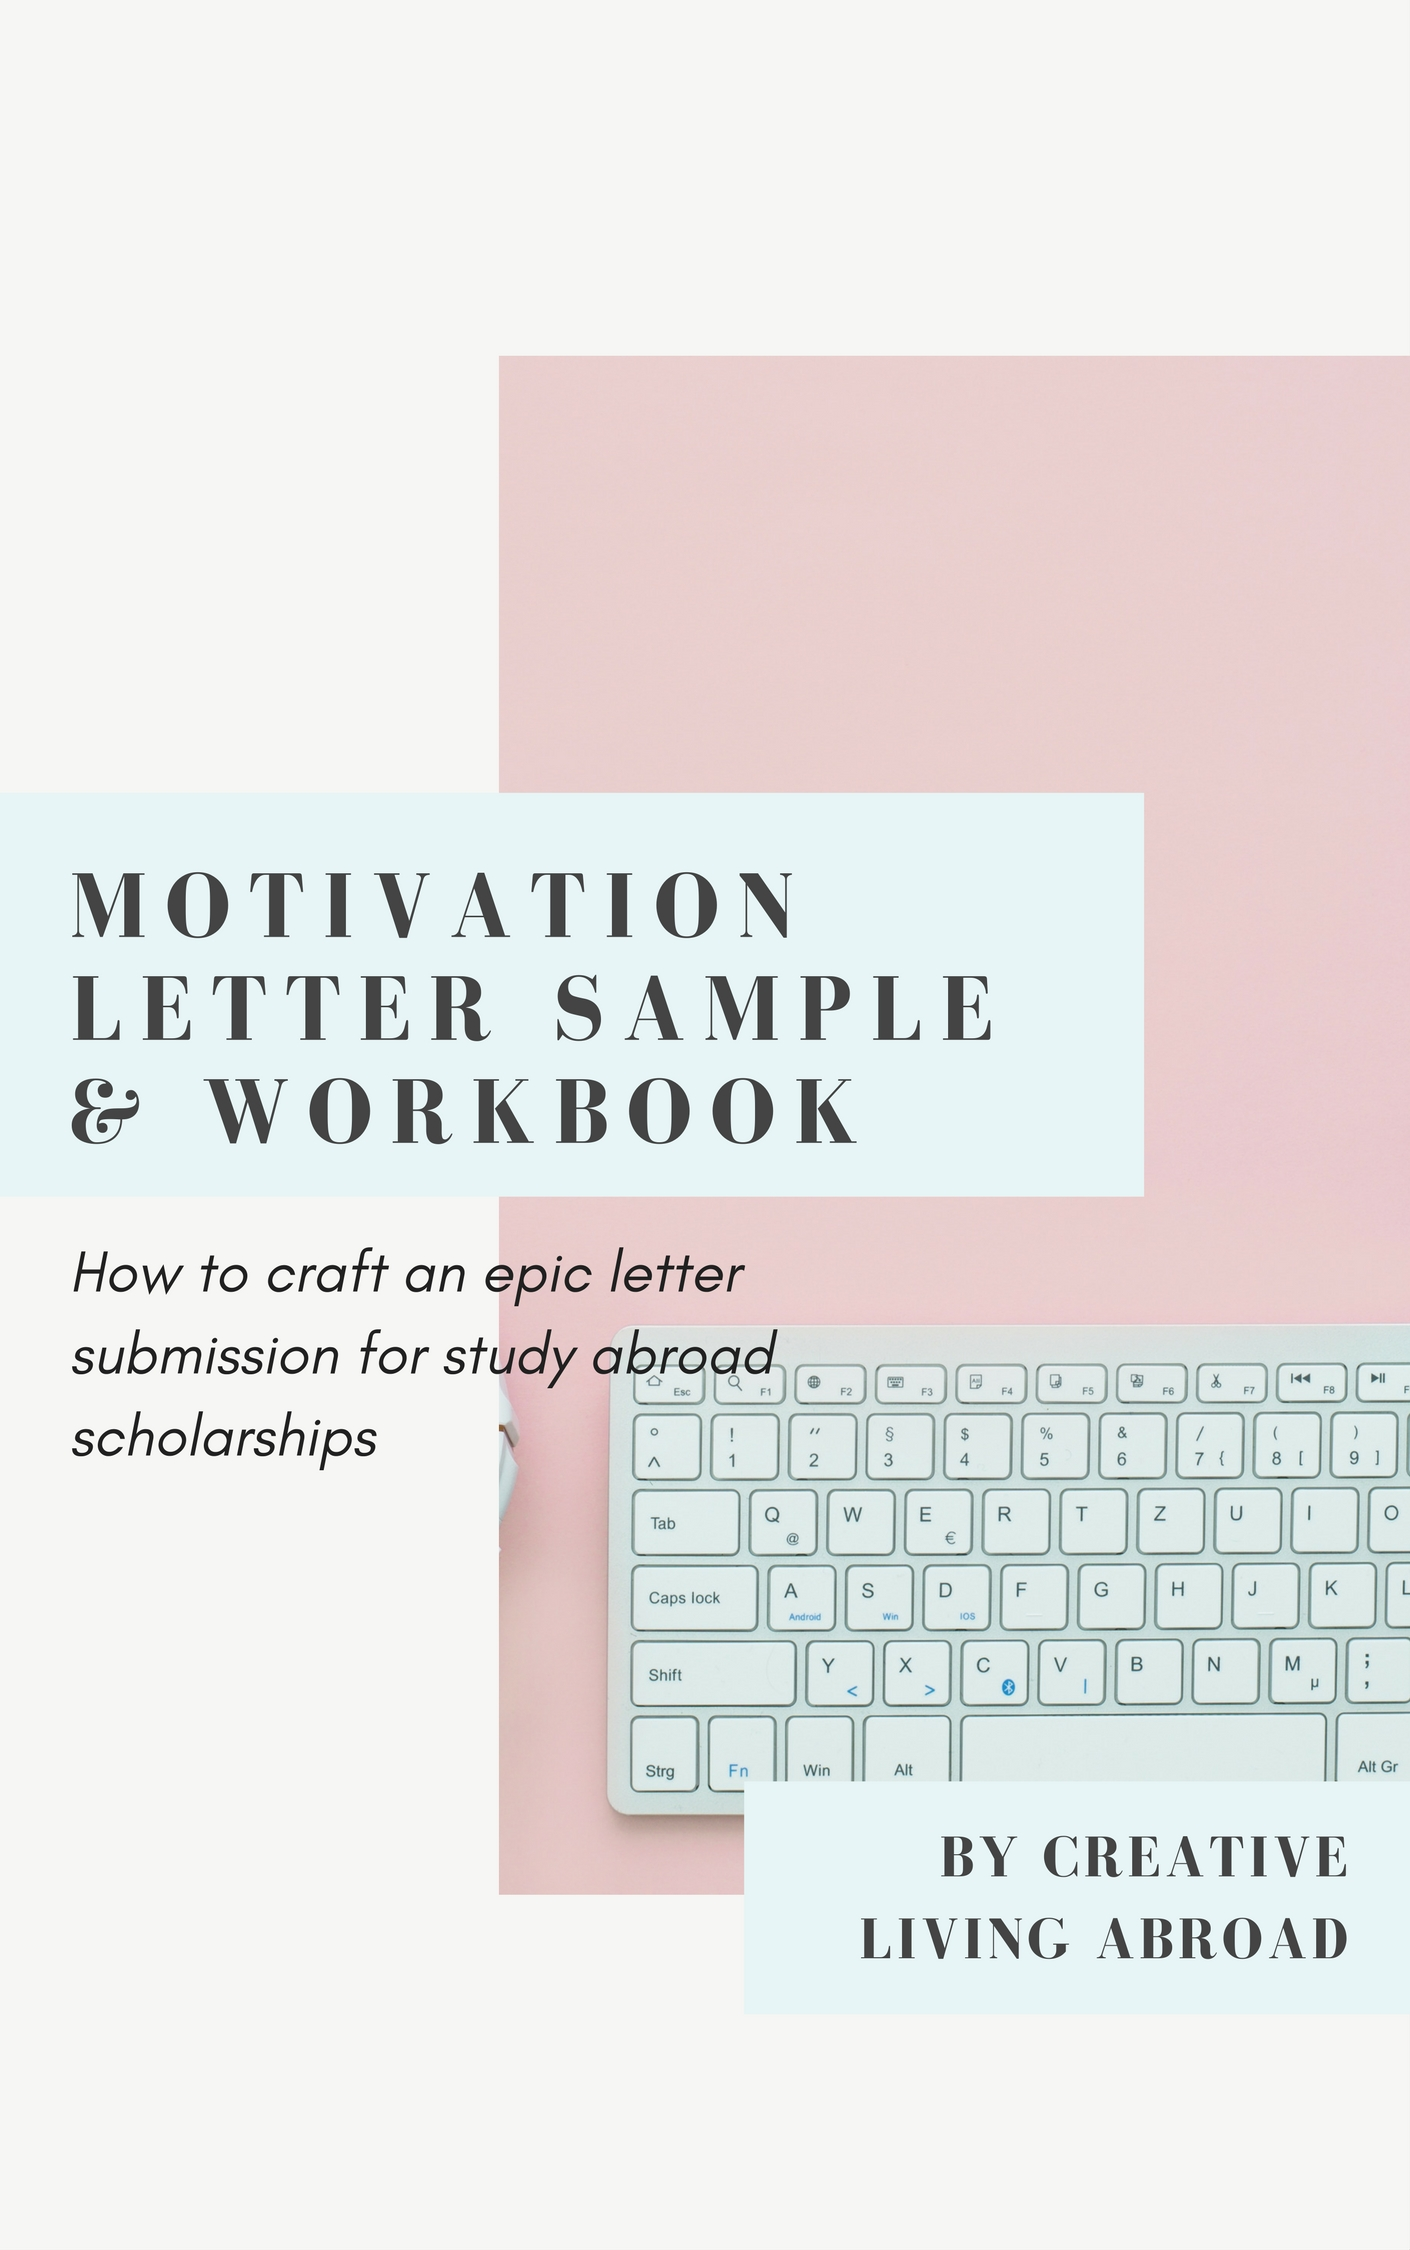 study abroad scholarship motivation letter sample and workbook